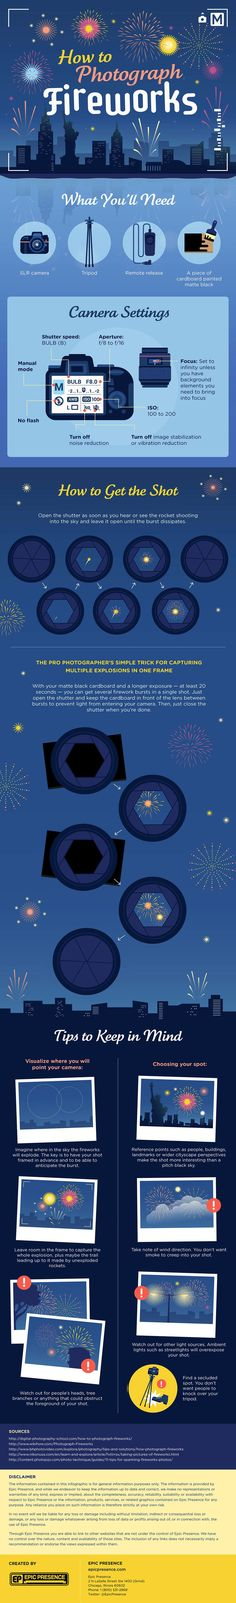 Better Pictures - Tips You Can Use to Take Better Photos of Fireworks To anybody wanting to take better photographs today